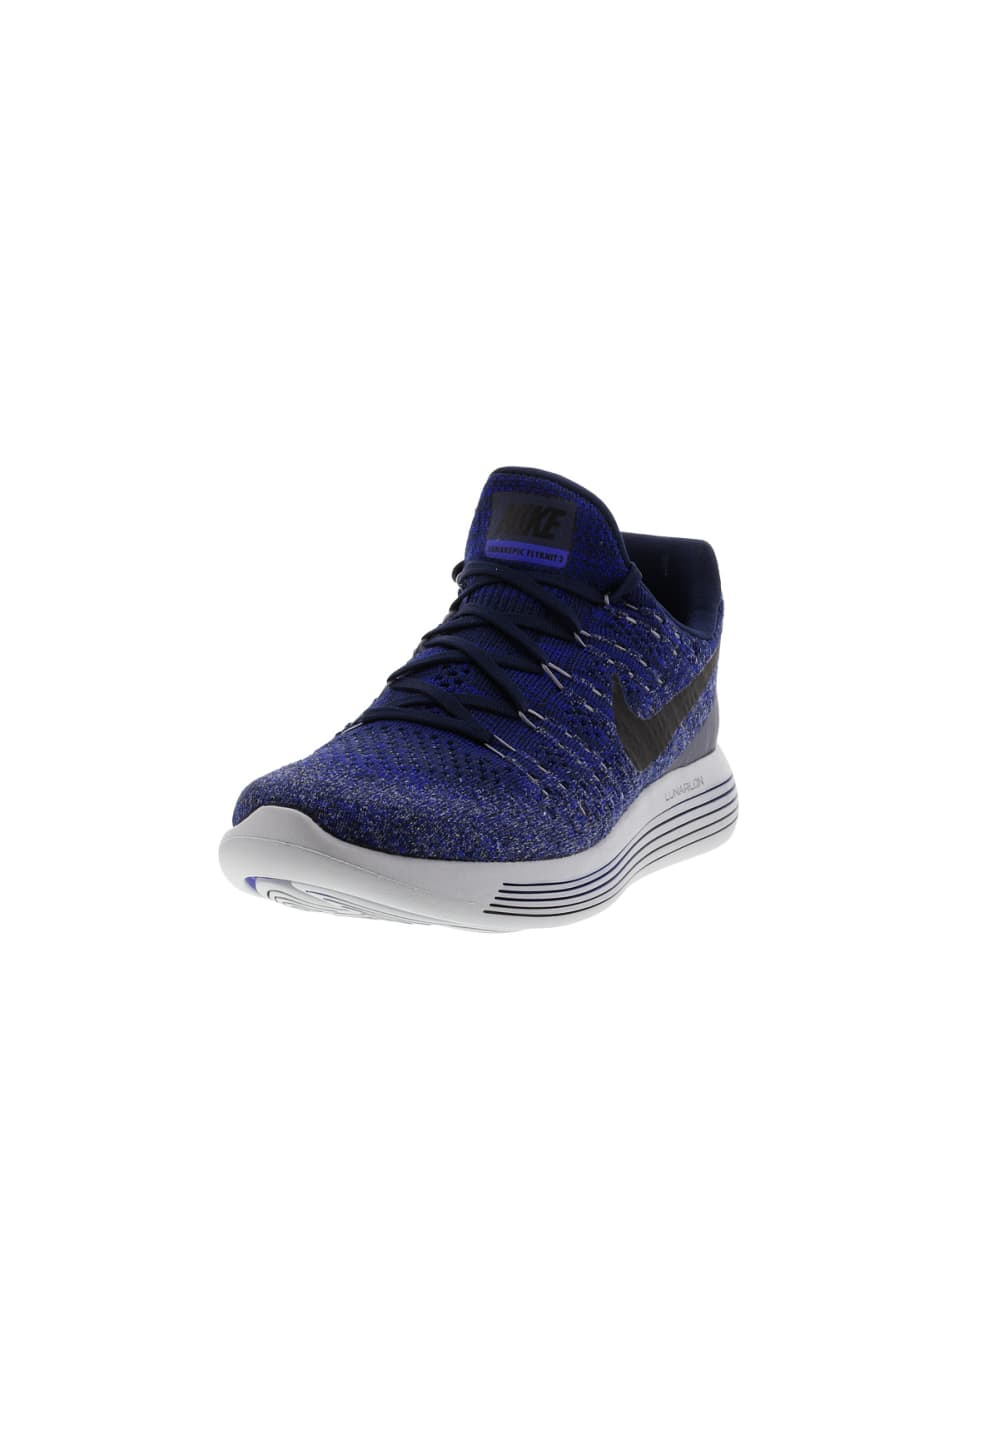 sports shoes 45f1d 18599 Nike LunarEpic Low Flyknit 2 - Running shoes for Men - Blue